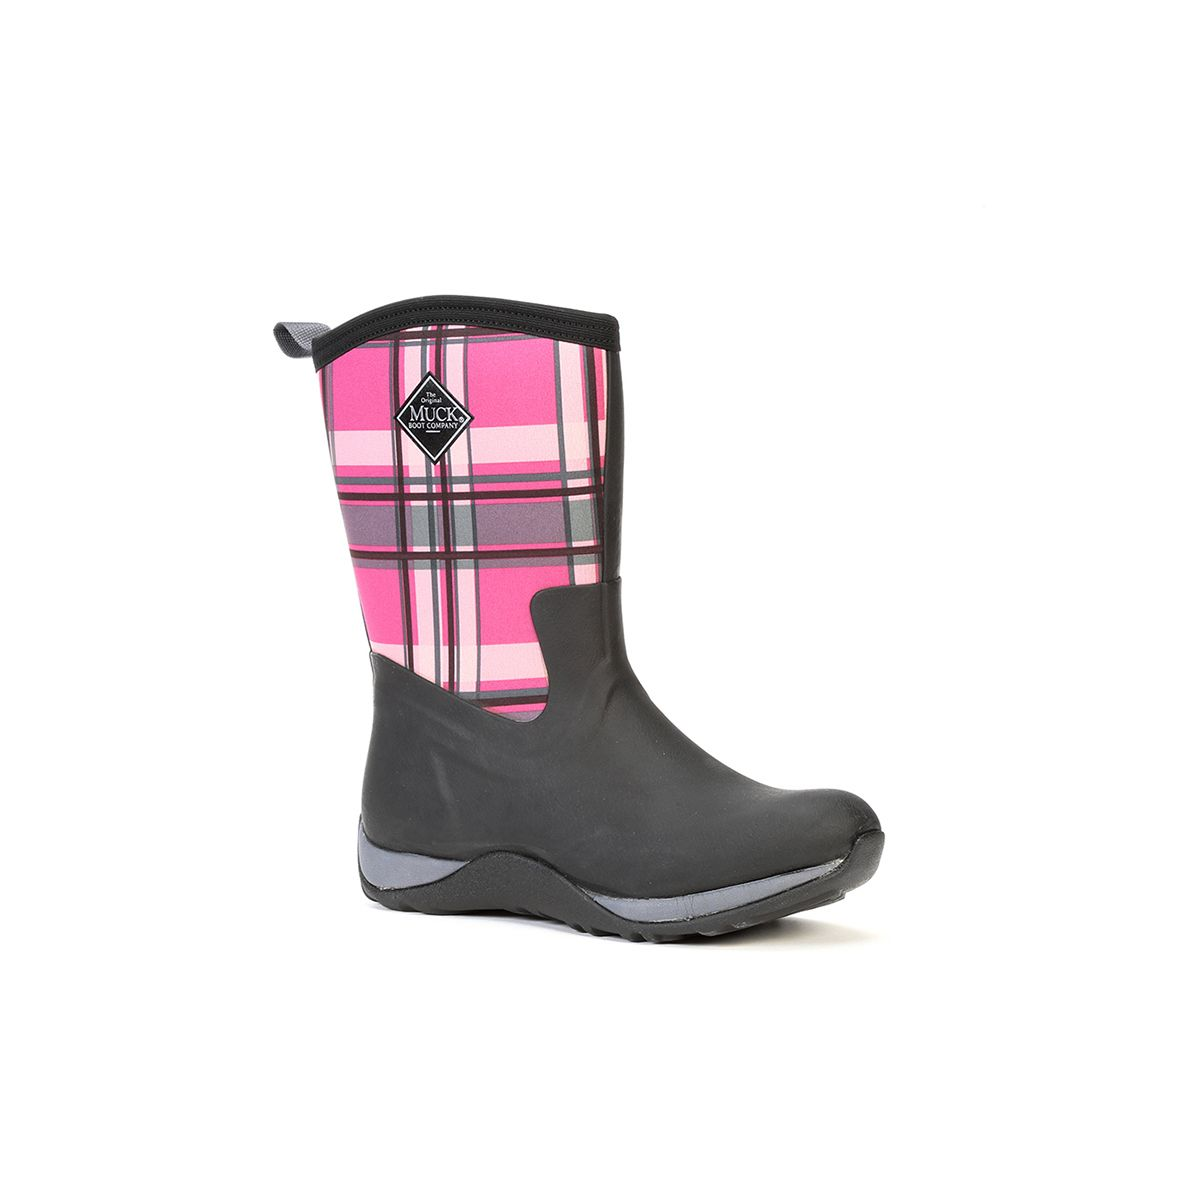 933a129ff0db5 Muck Boots Company Women's ARCTIC WEEKEND BLACK-PINK PLAID, Neoprene ...